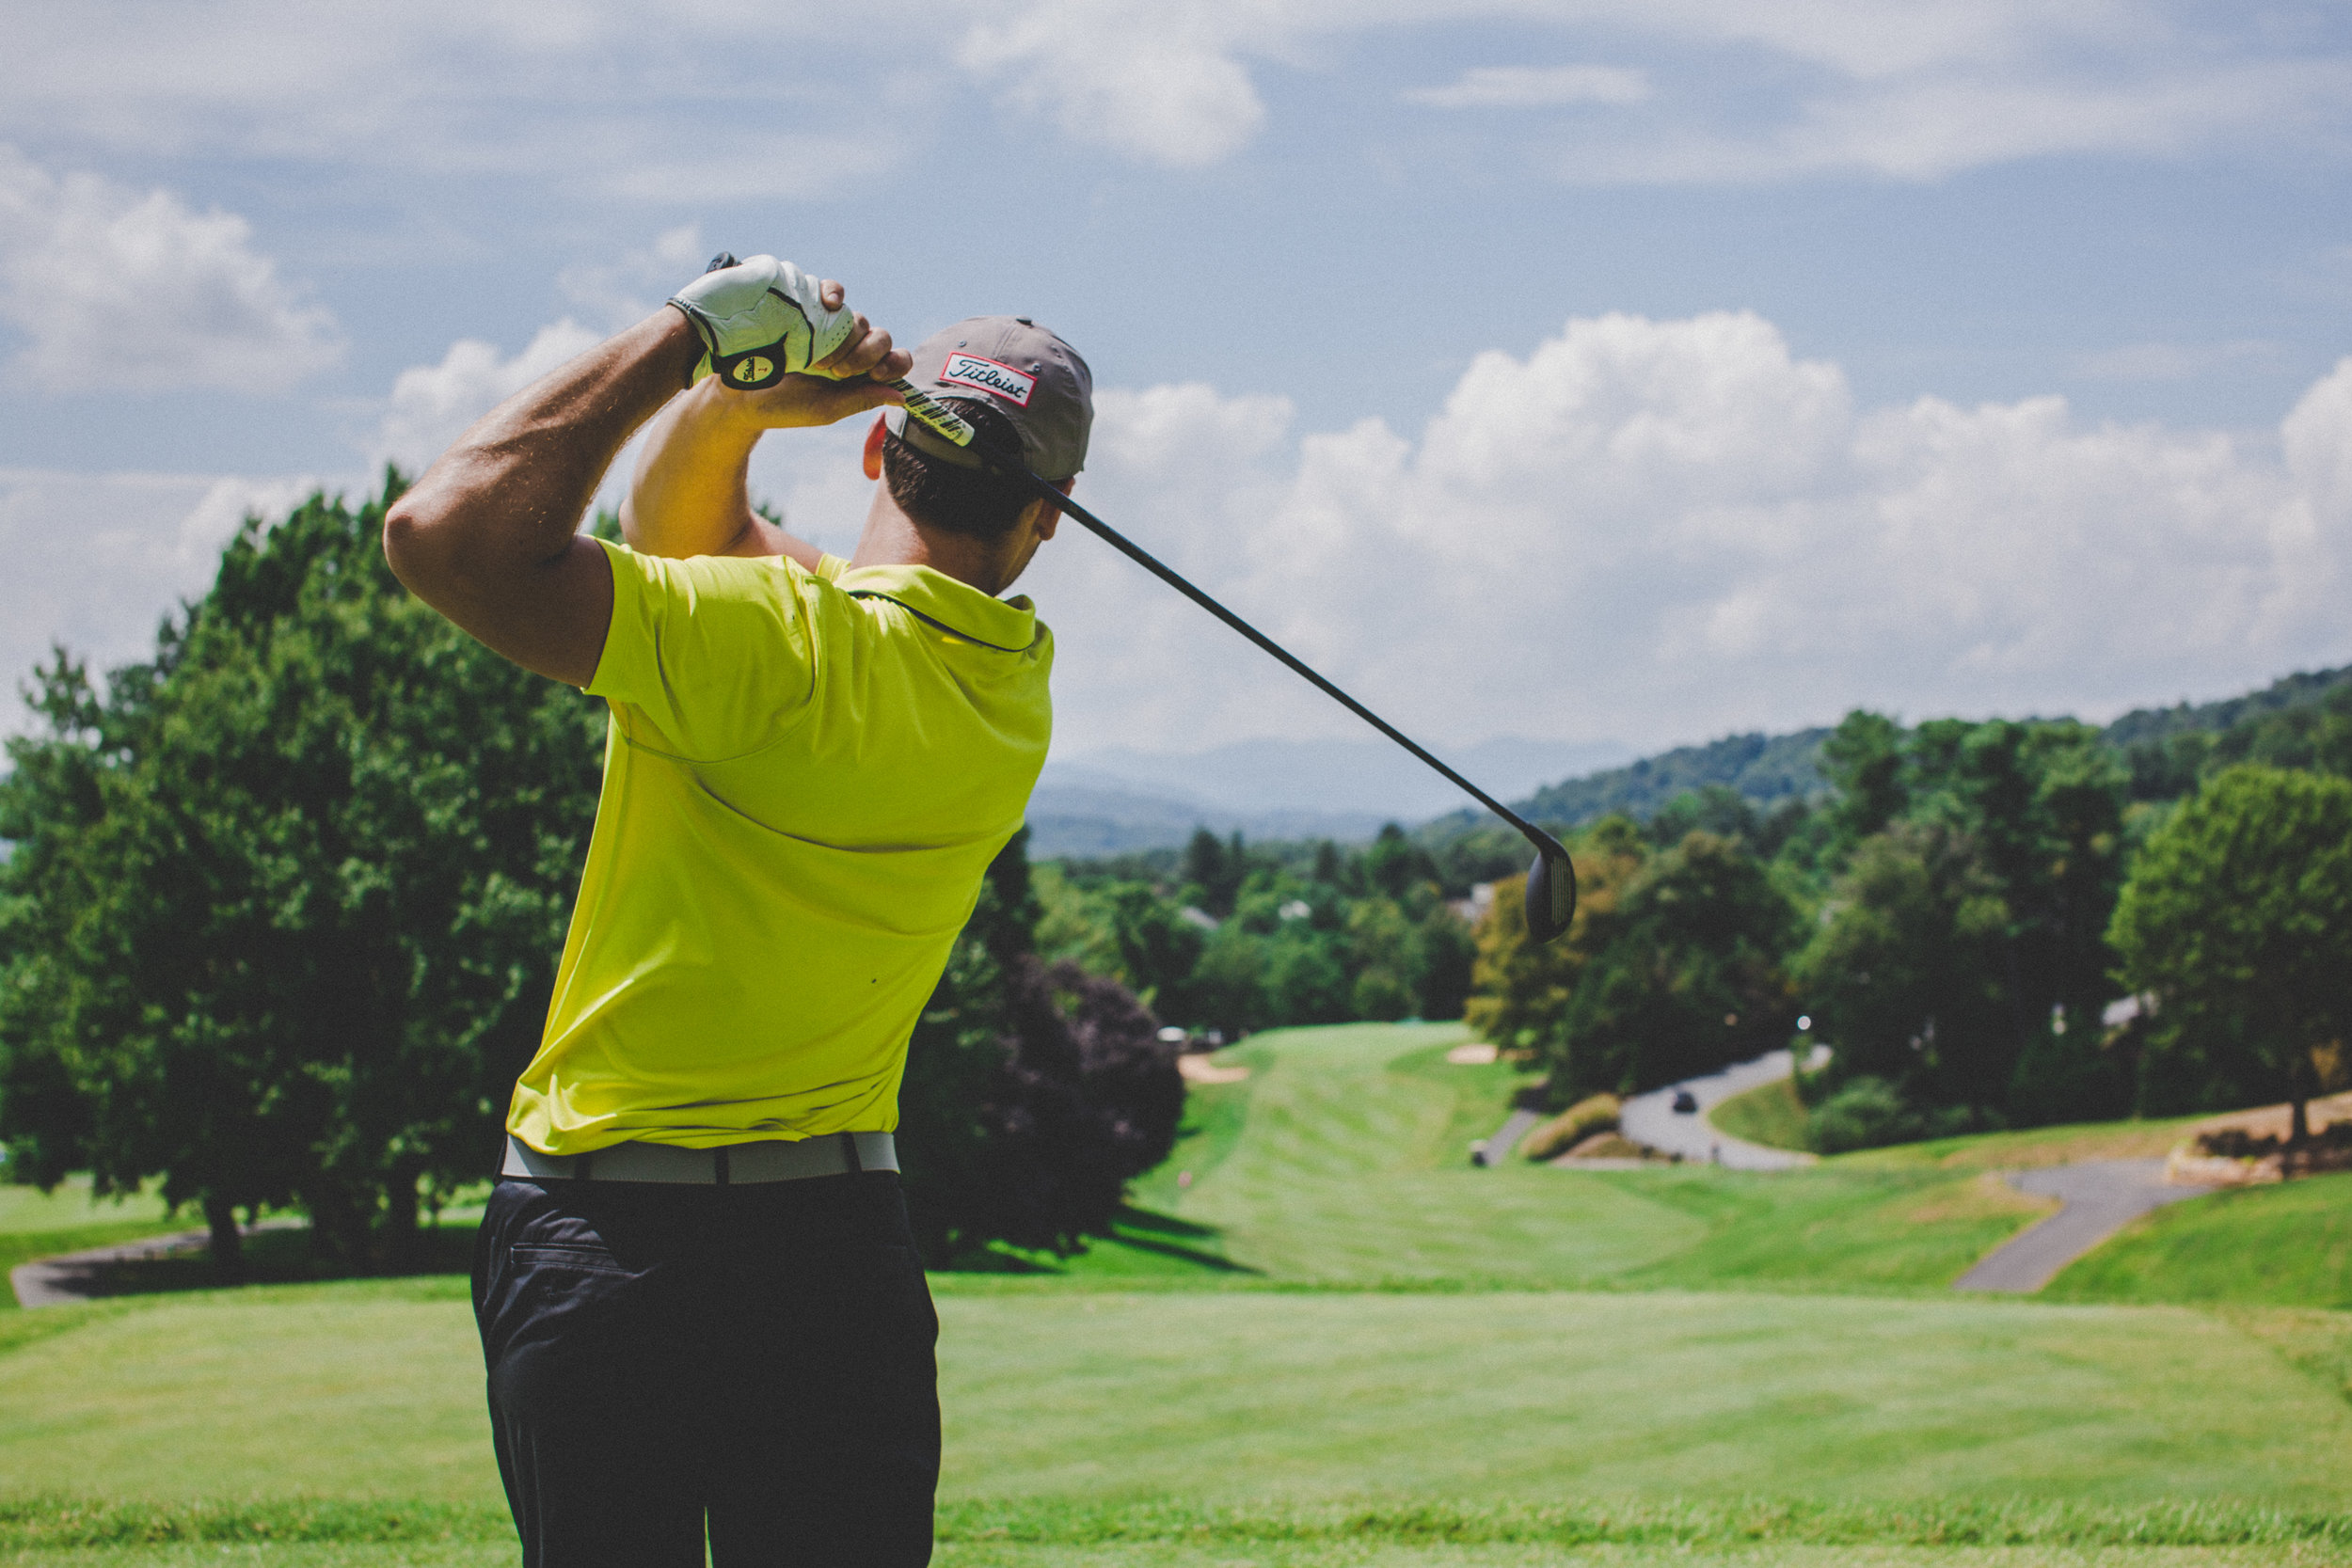 Let Us Handle The Driving - The Okanagan Valley offers over 70 golf courses. During your next golf holiday, arrive to the course each day in comfort and style with White Star Limo.